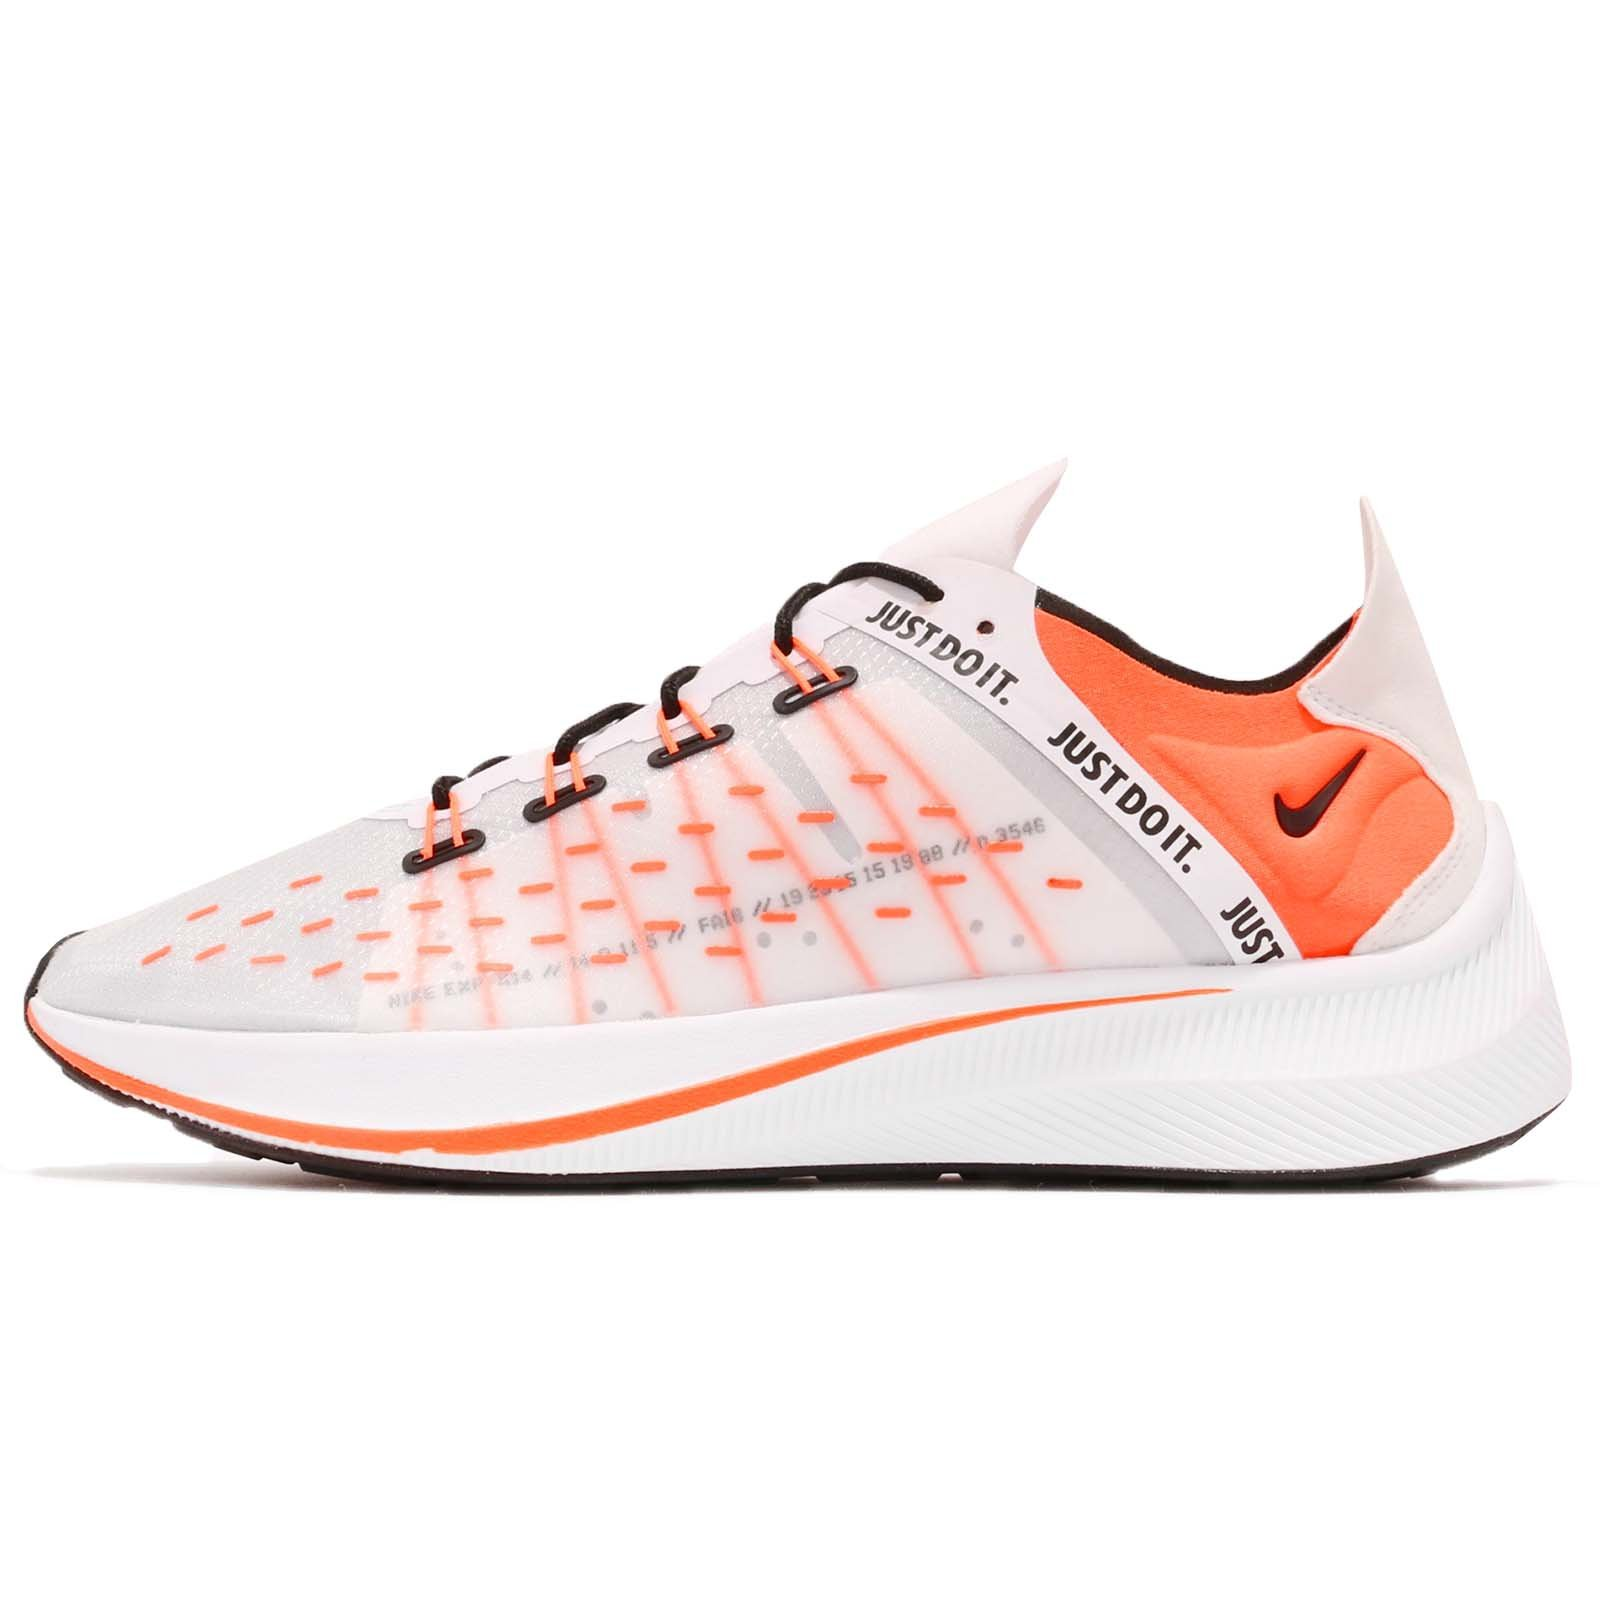 727047bc79a4 Galleon - NIKE EXP-X14 SE Just Do It Men s Shoes White Total Orange Black  Wolf Ao3095-100 (12.5 D(M) US)